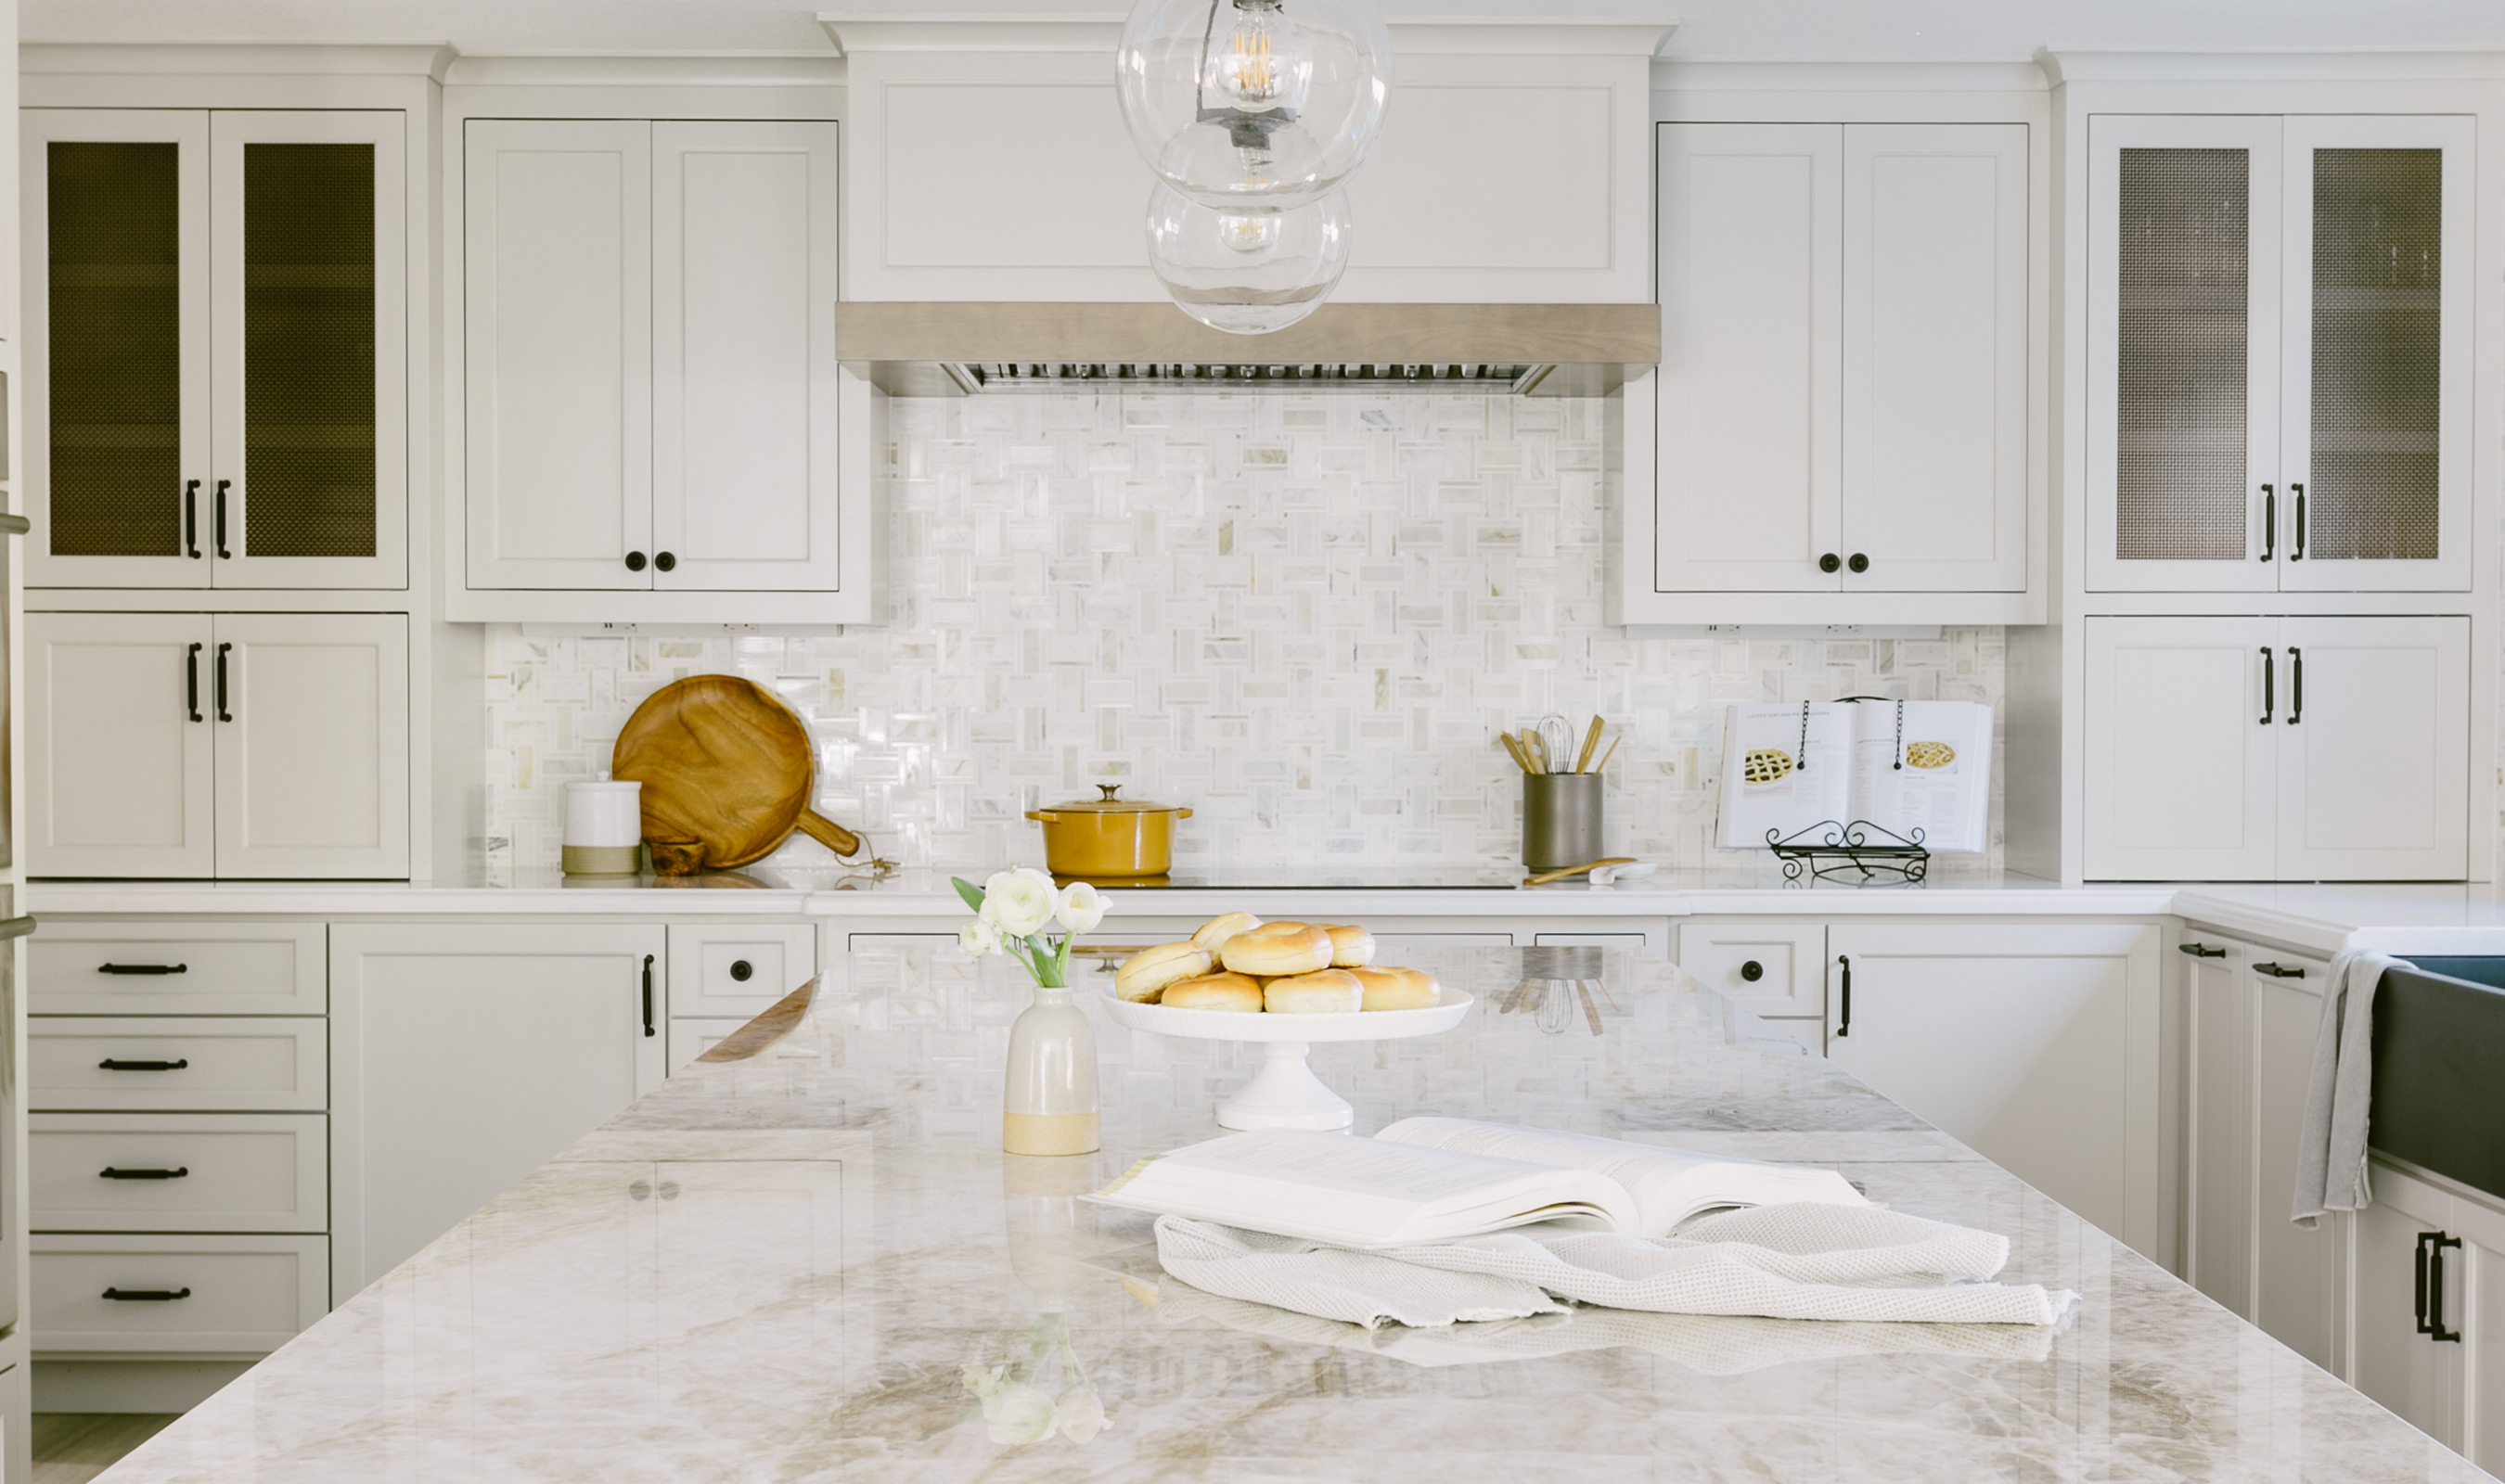 The rich brass tones of S-12 bring out the warmth in the marble backsplash and countertops.